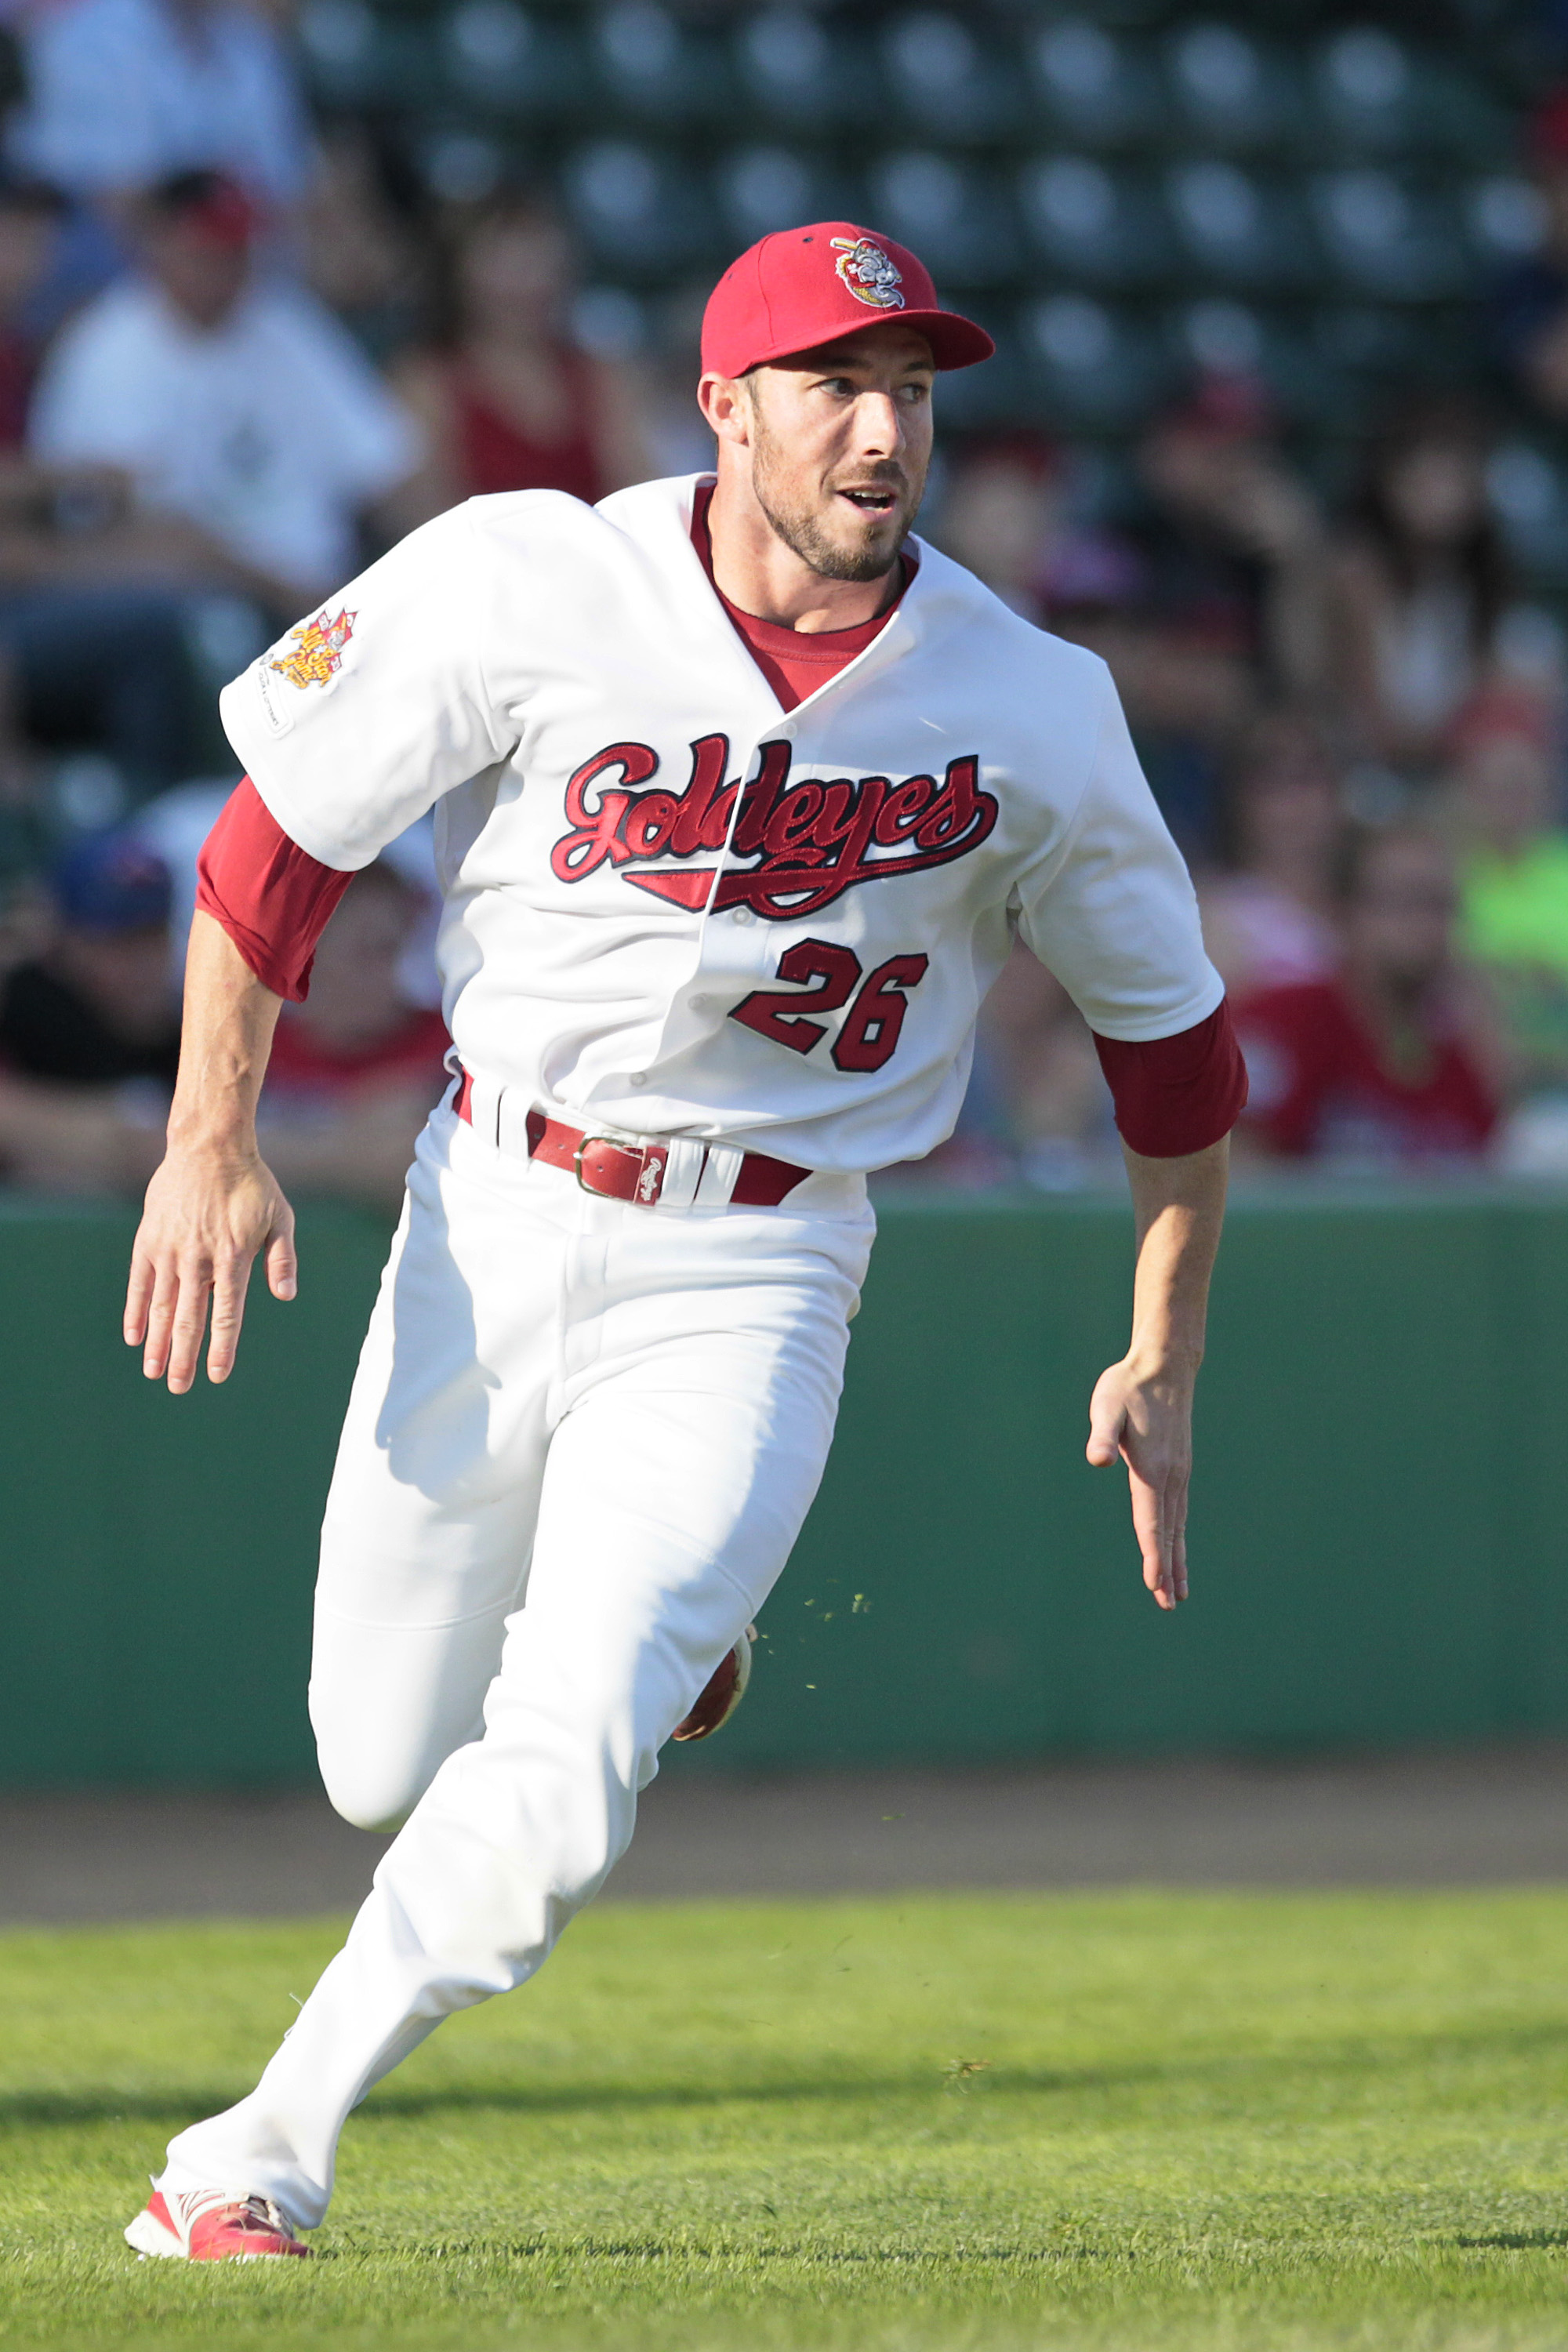 Goldeyes' Donnie Webb (26) rounds third in the Fastest Baserunner contest at the All-Stars Skills Competition.